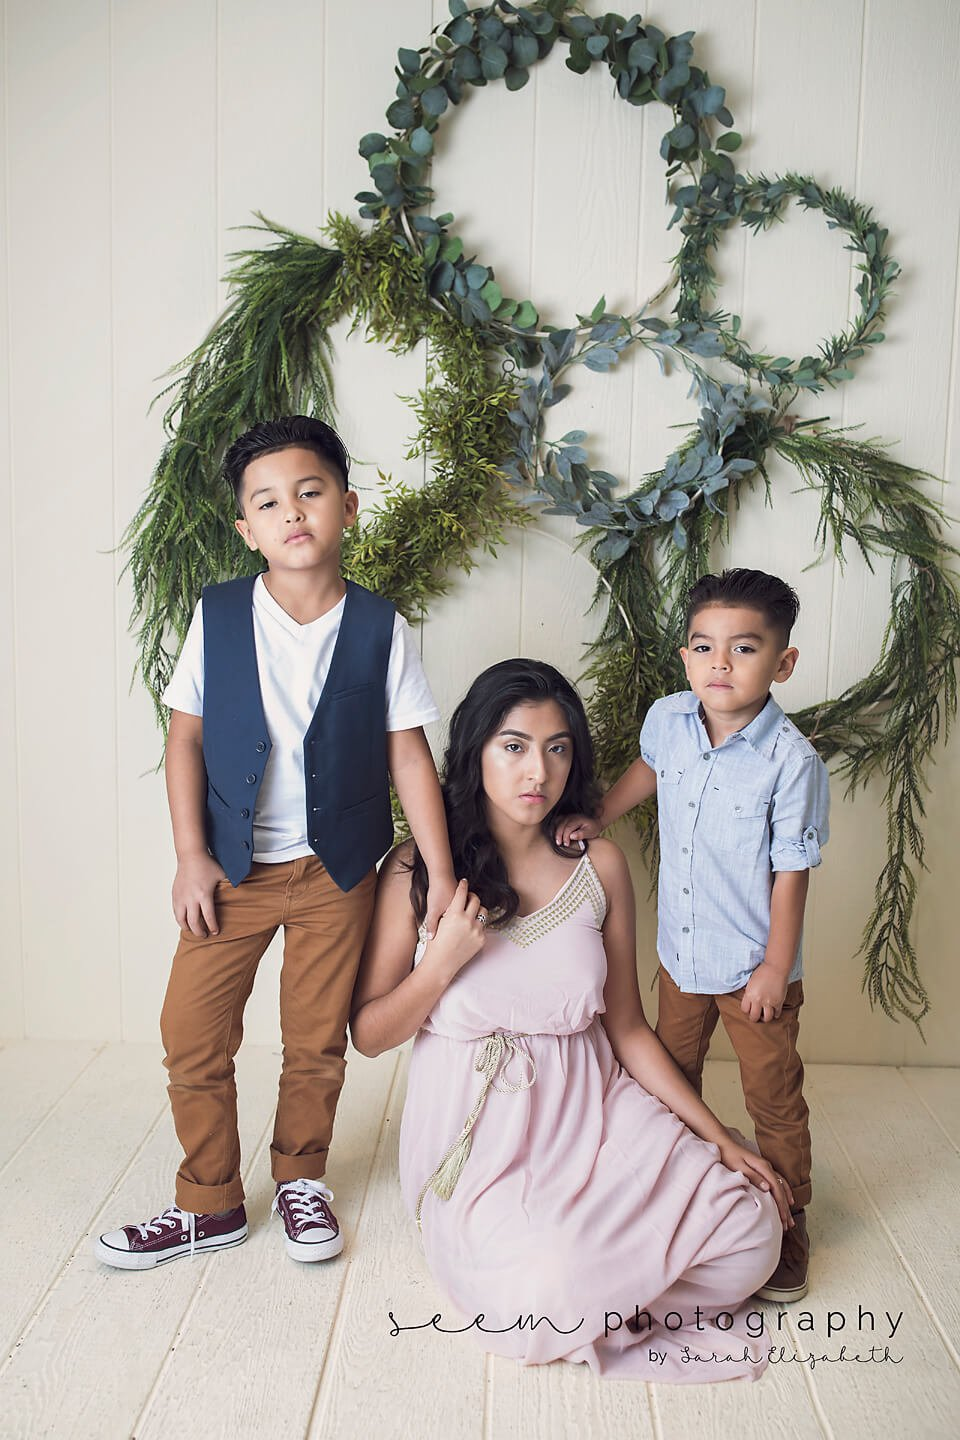 SEEM photography Kids and Wreath